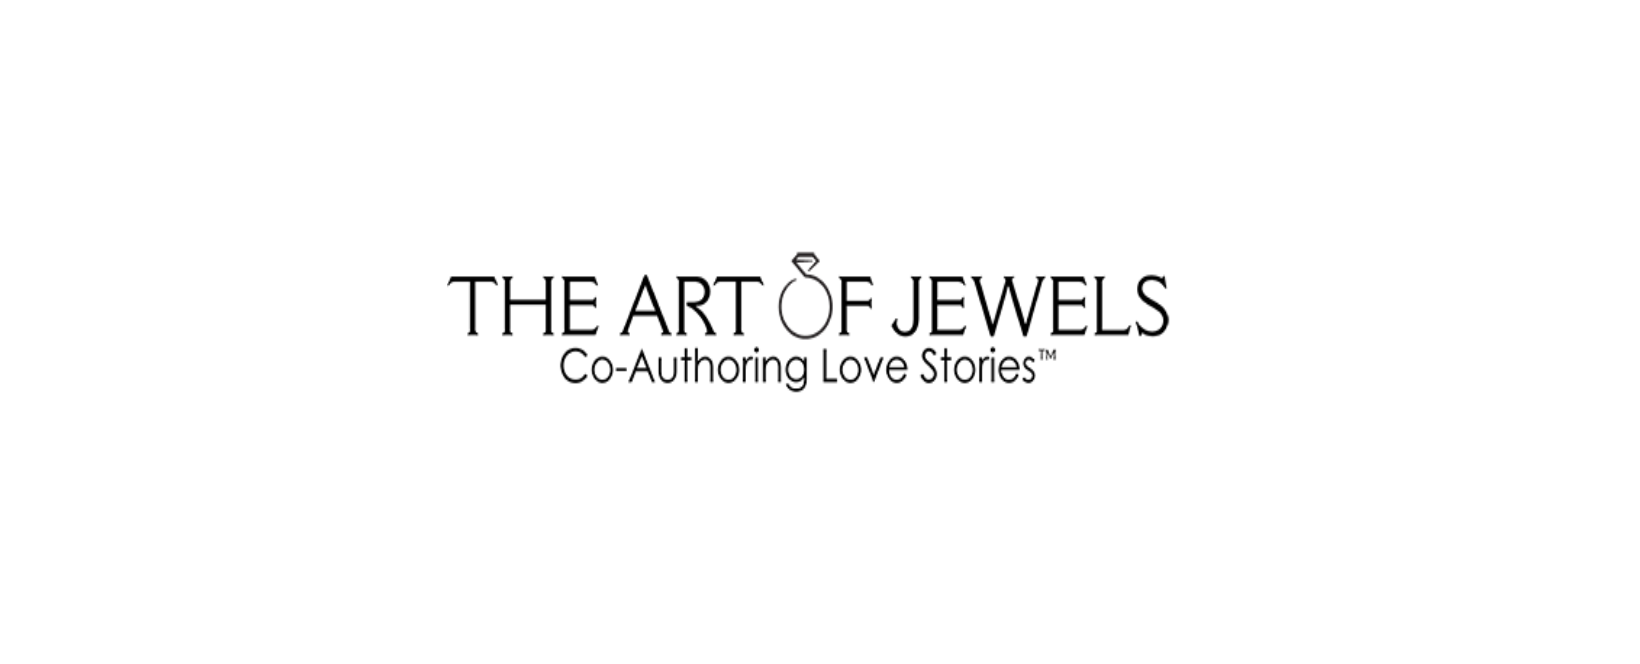 The Art Of Jewels Discount Code 2021